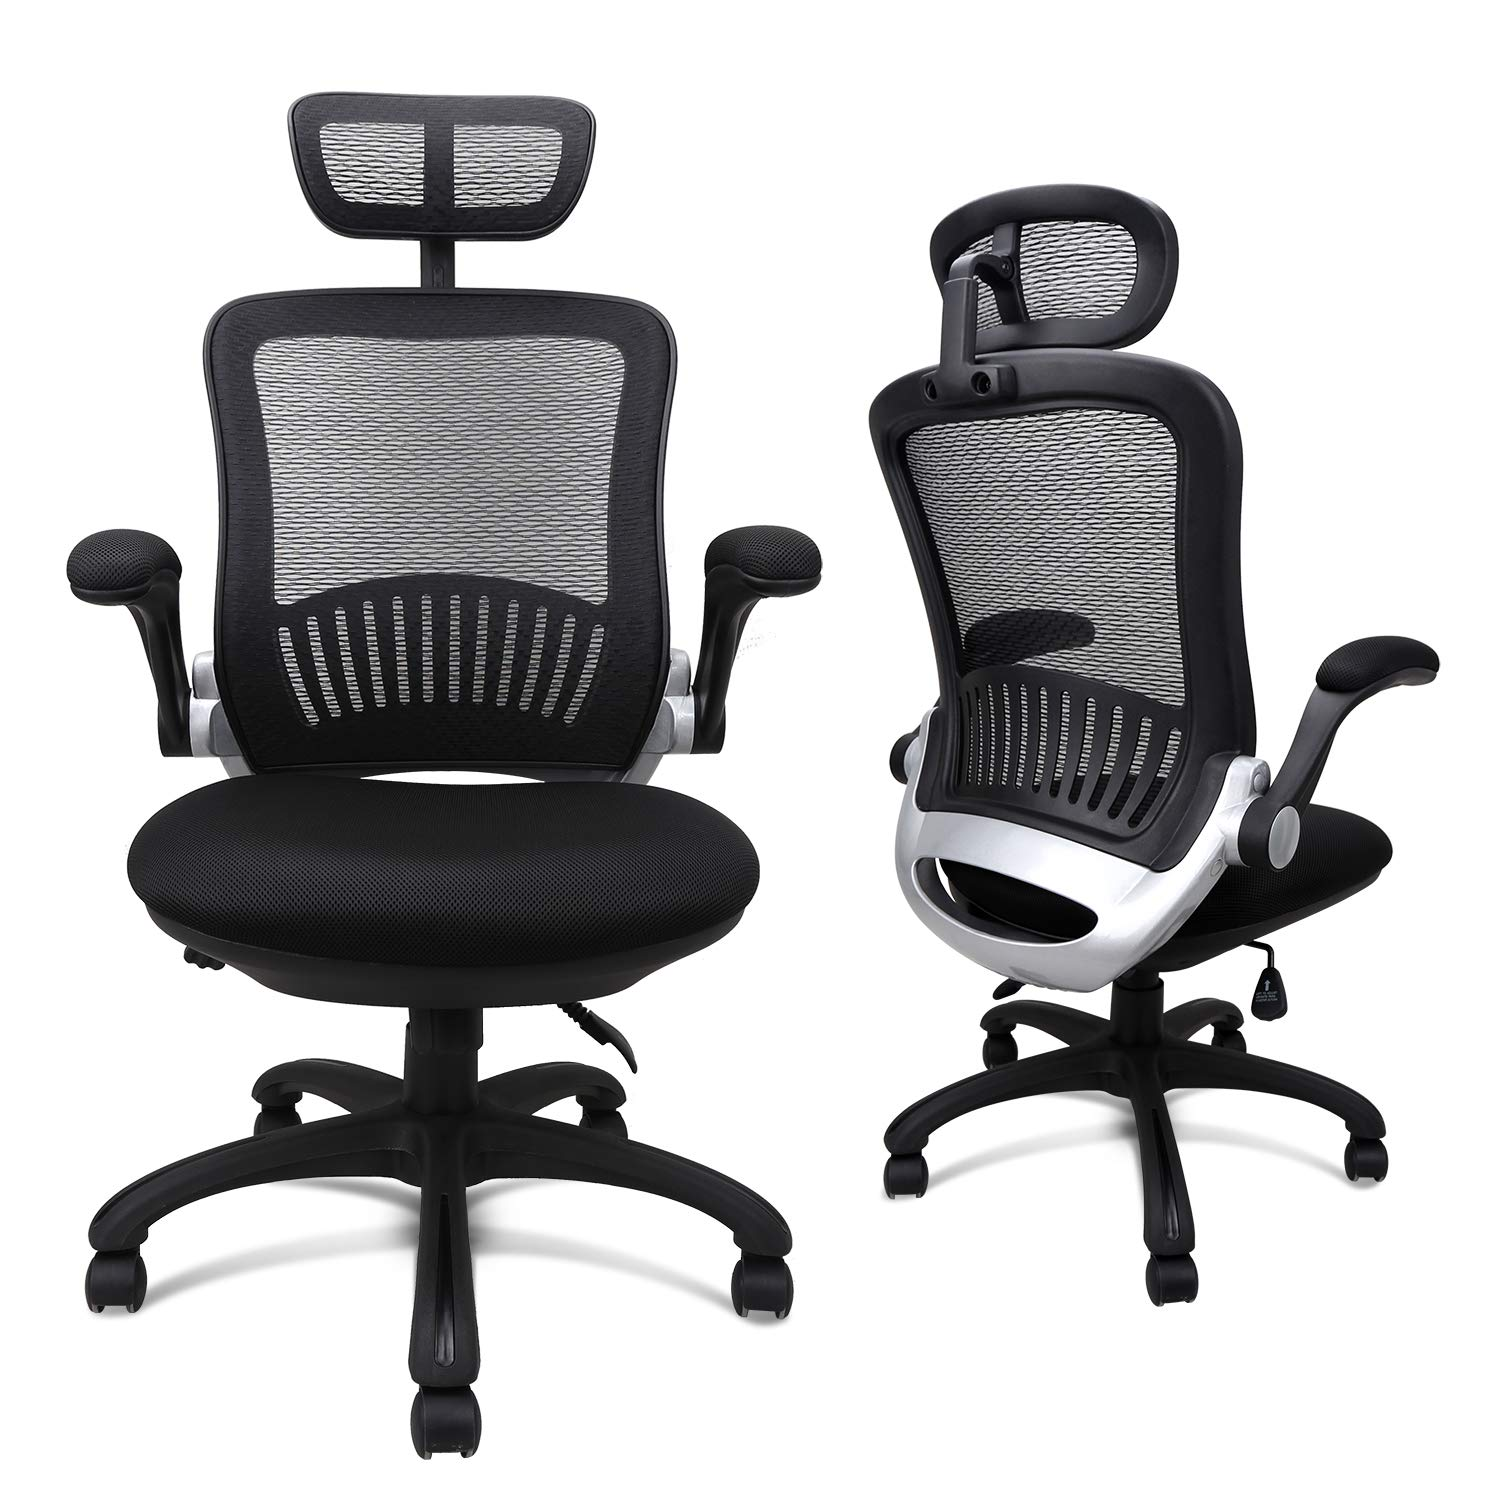 Office Chairs, Komene Ergonomic Mesh Desk Chairs High Back Computer Task Chairs with Adjustable Backrest, Headrest, Armrest and Seat Height for Conference Room by Komene (Image #1)